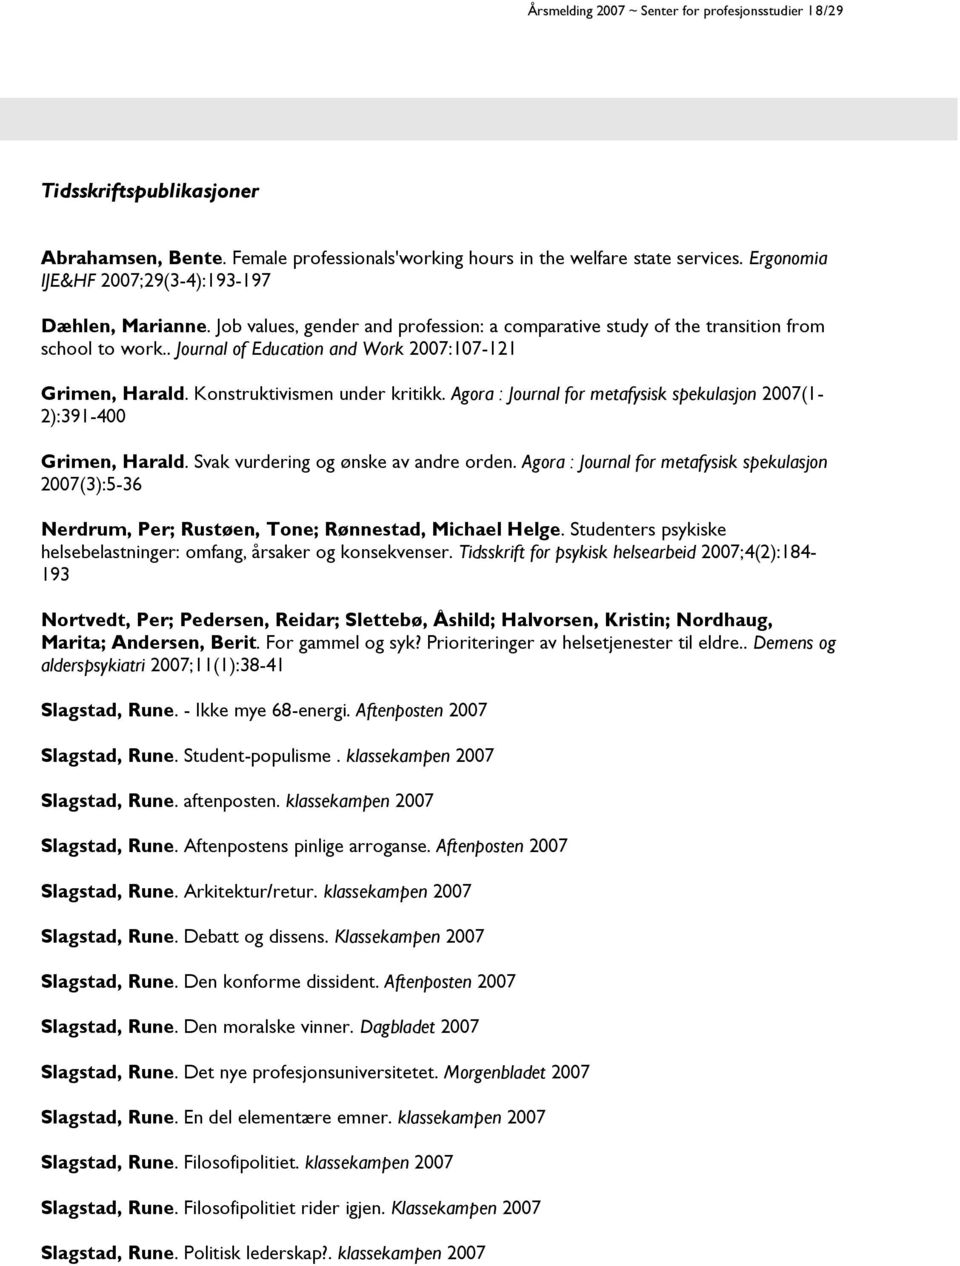 . Journal of Education and Work 2007:107-121 Grimen, Harald. Konstruktivismen under kritikk. Agora : Journal for metafysisk spekulasjon 2007(1-2):391-400 Grimen, Harald.